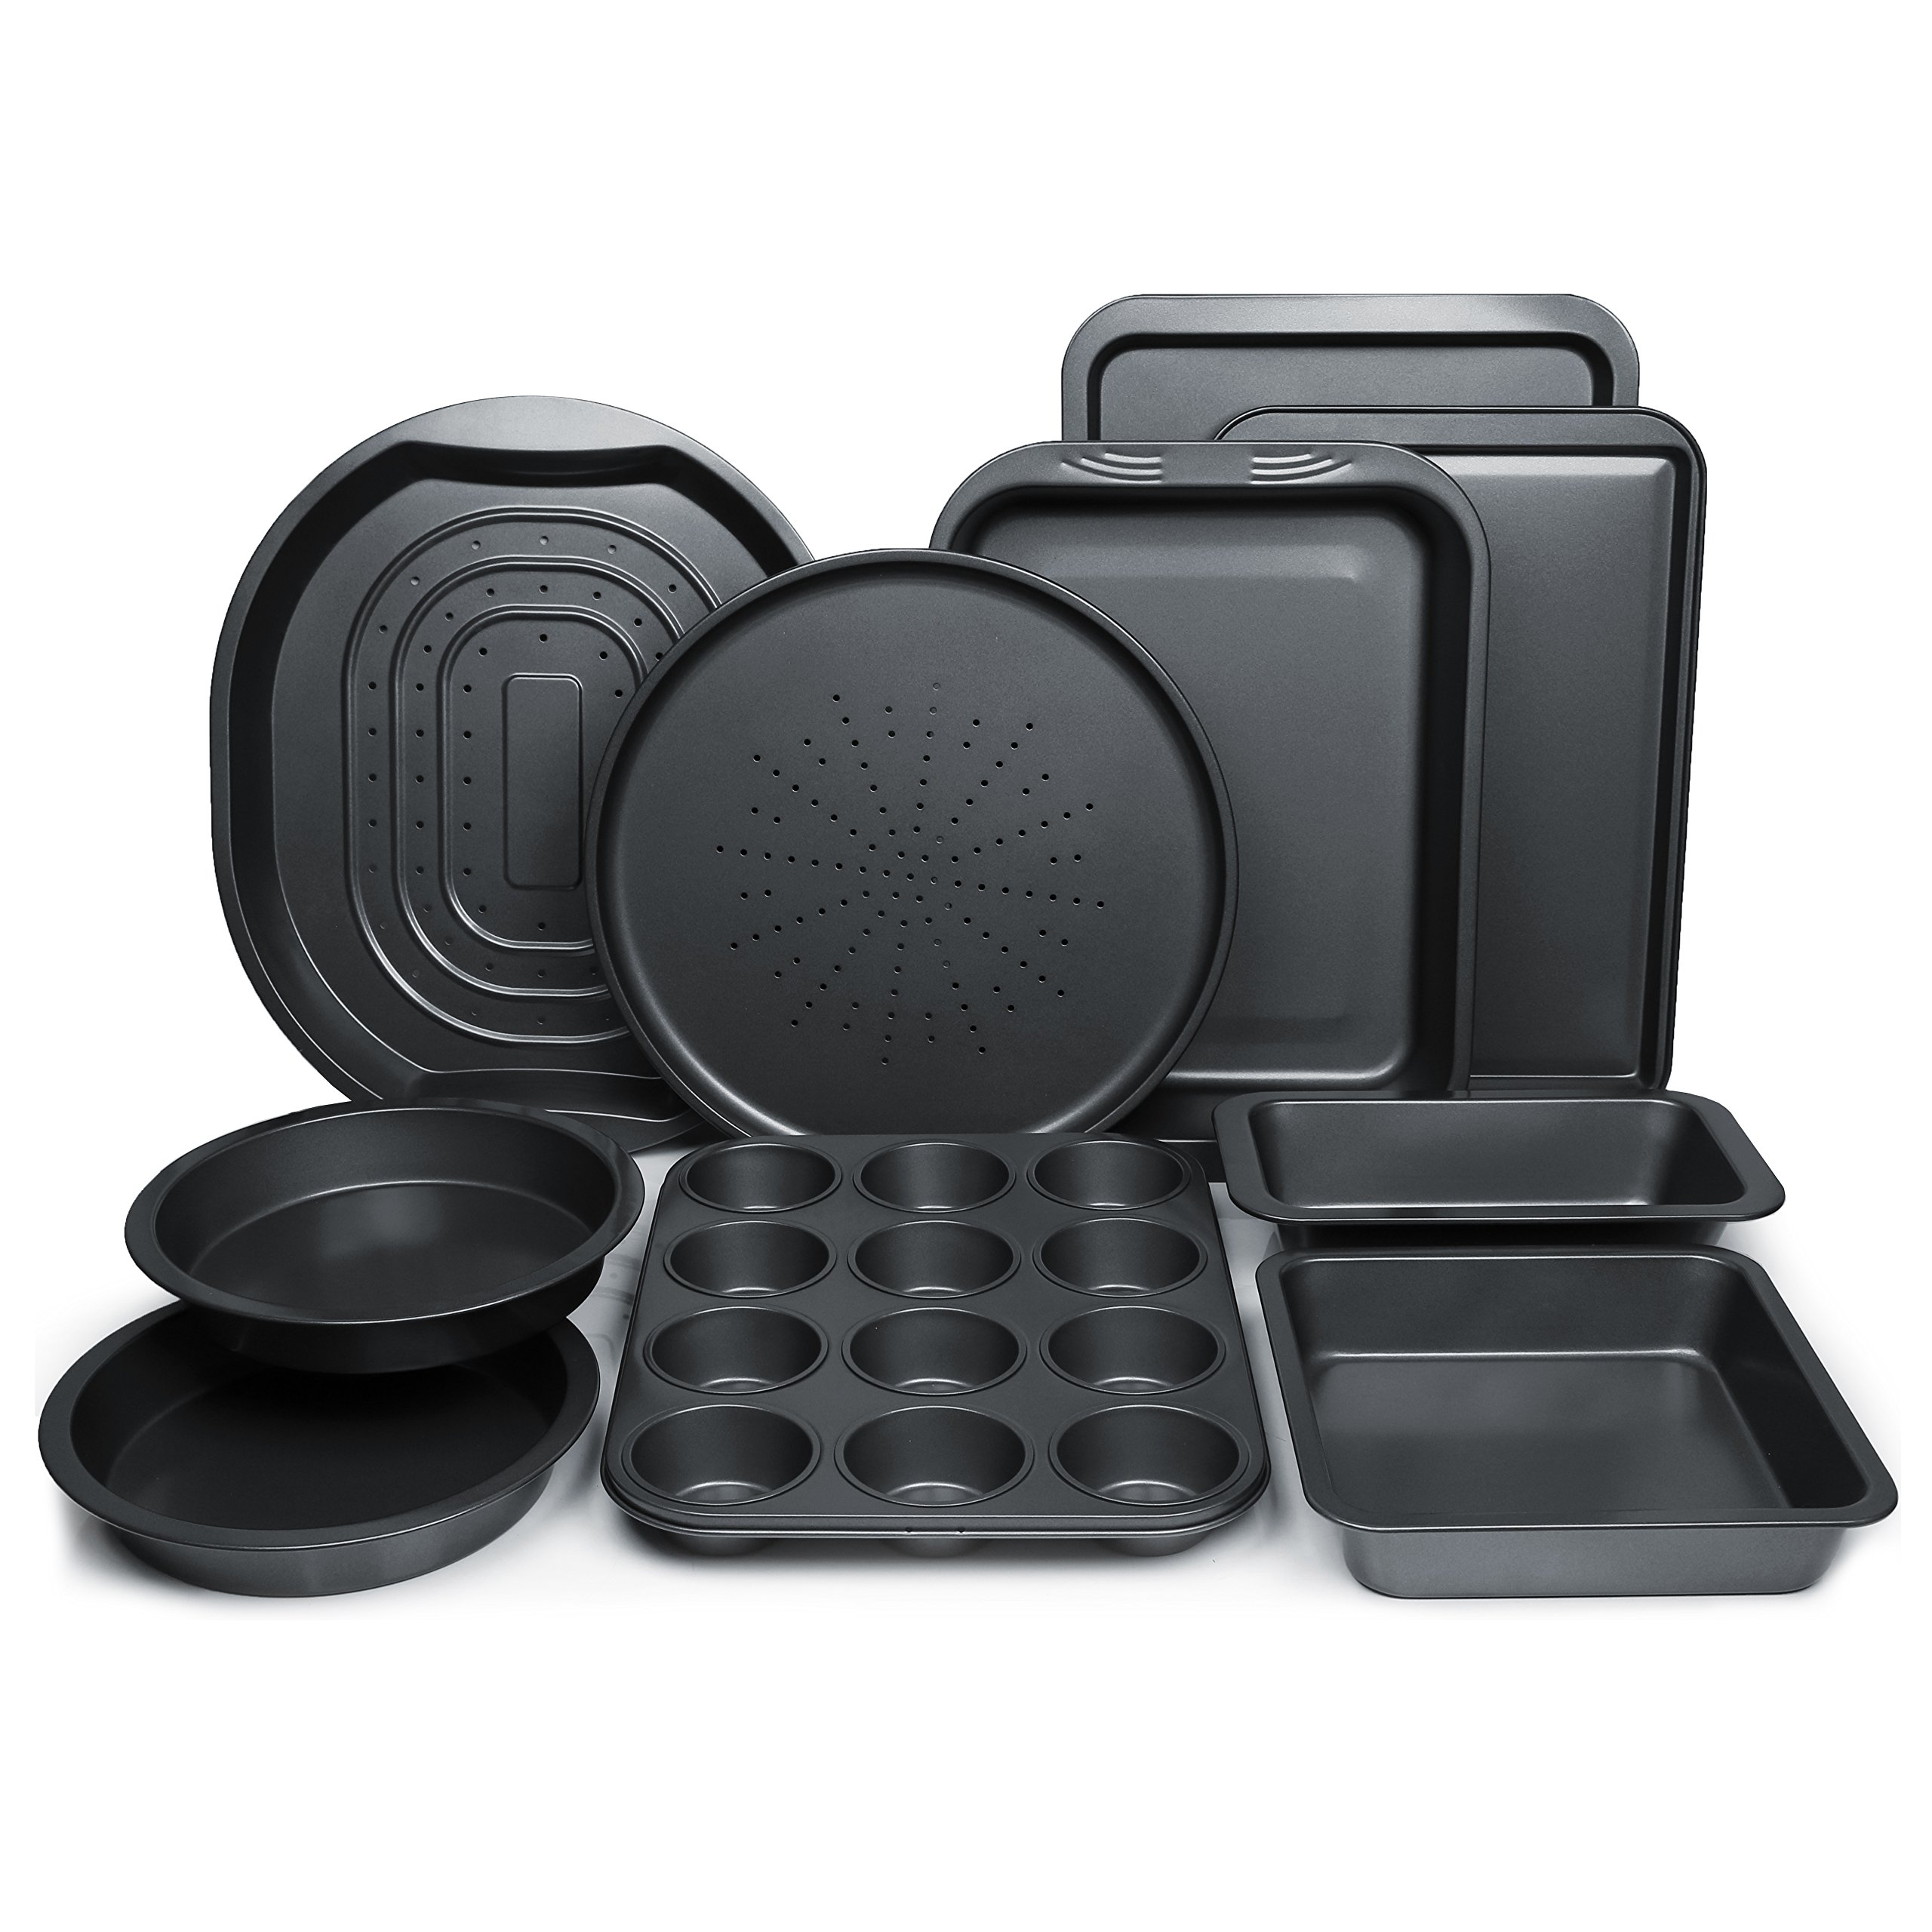 ChefLand 10-Piece Nonstick Bakeware Set | Kitchen Baking Pans | Non Stick Coating, Durable Carbon Steel, Dishwasher Safe | Oven Crisper, Pizza Tray, Cake Pans, Cookie Sheet, Muffins, Bread Loaf Pan by ChefLand